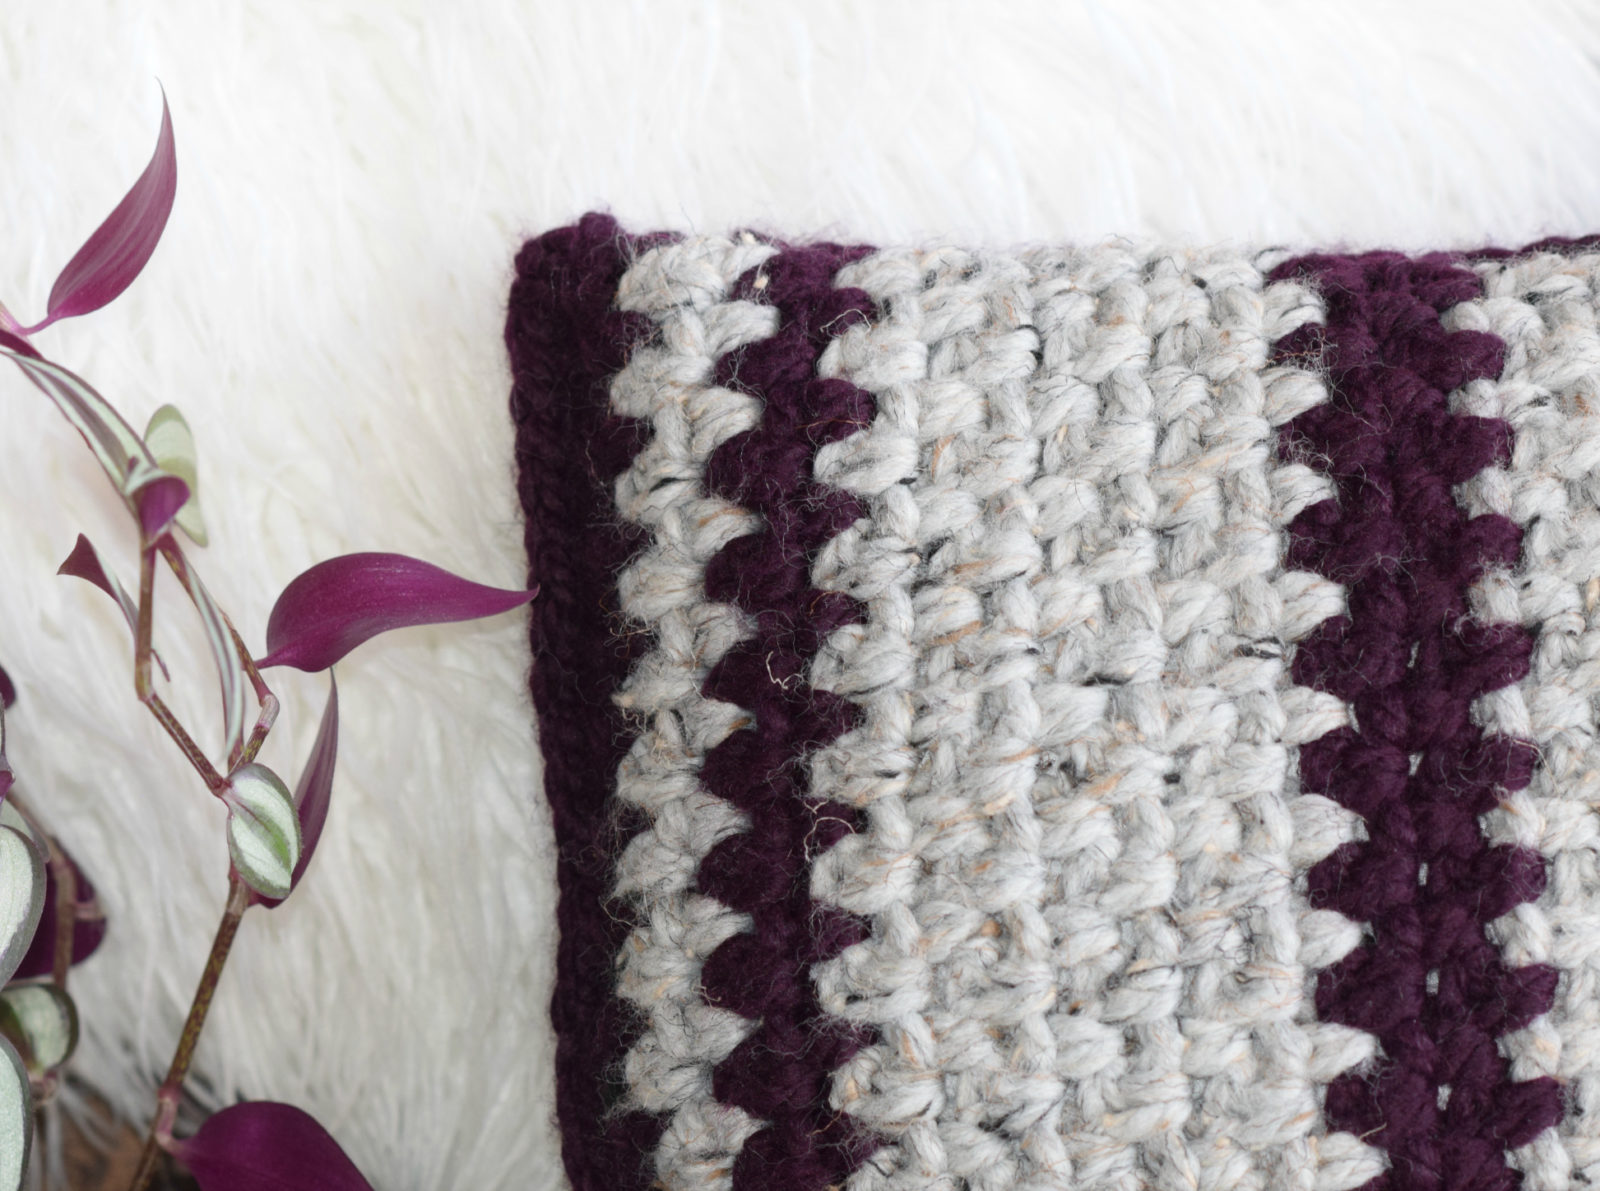 Taos Crochet Throw Pillow Amp Wool Ease Yarn Mama In A Stitch